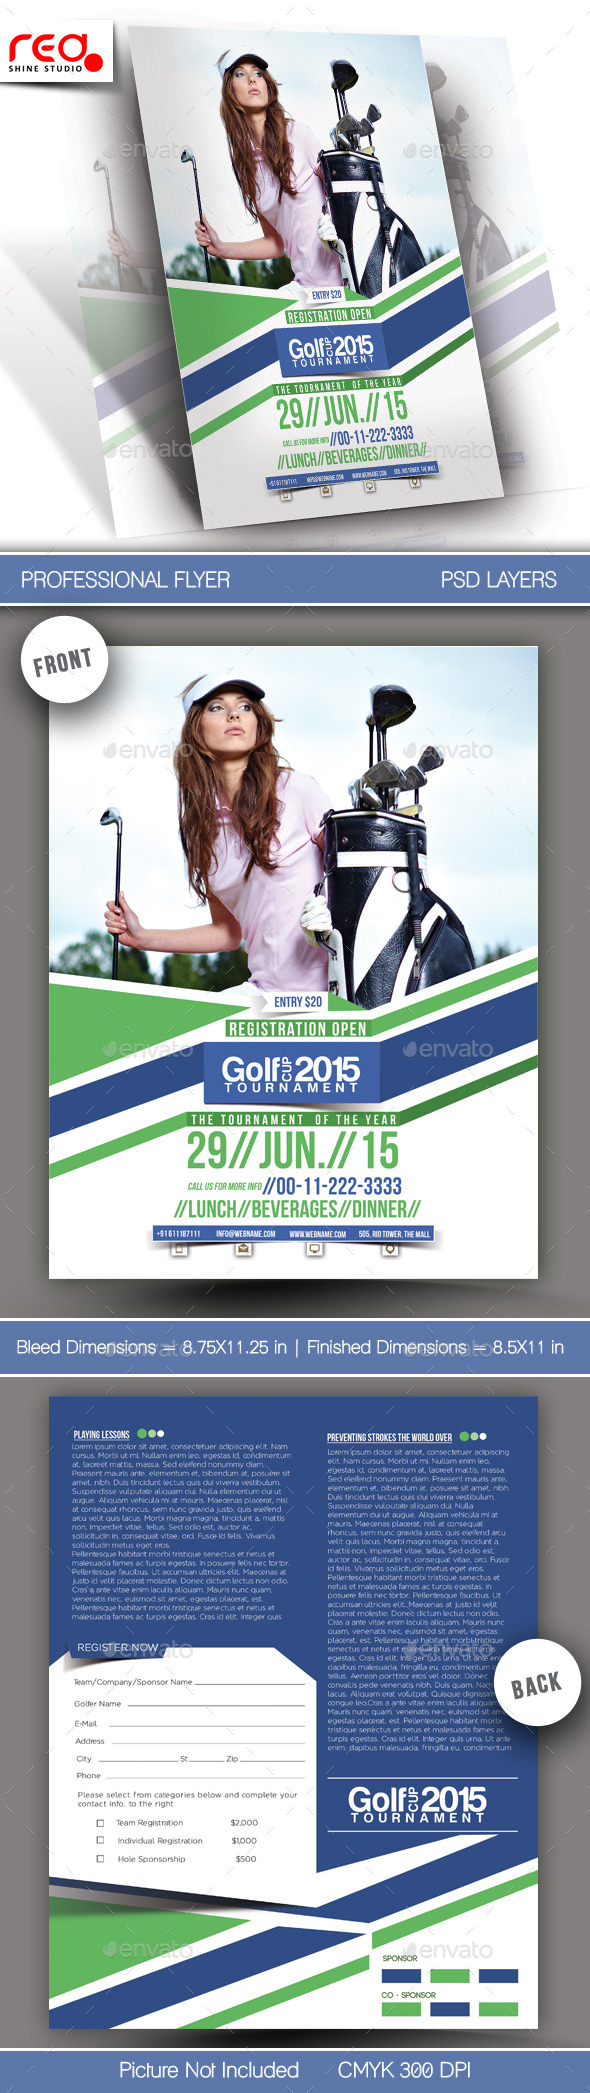 GraphicRiver Golf Cup Tournament Flyer Template 1 11507720